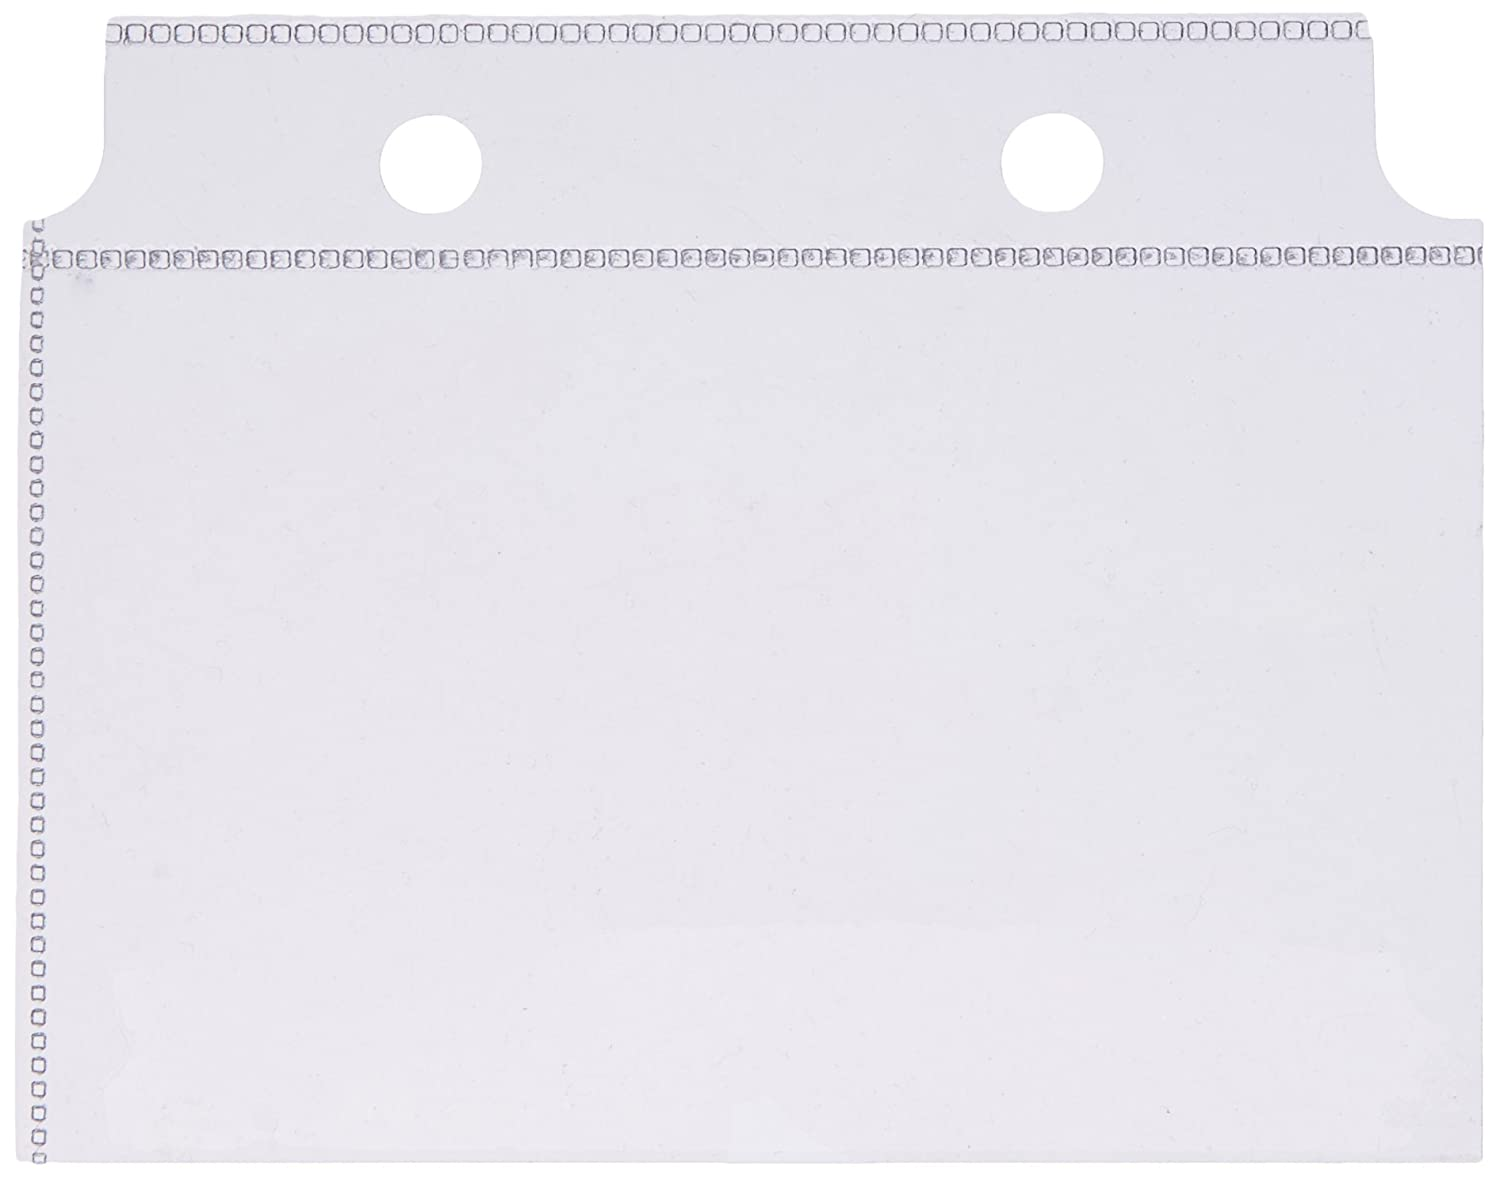 American Crafts 20 Piece We R Memory Keepers Instax Photo Sleeves, 2.1 x 3.4 662673